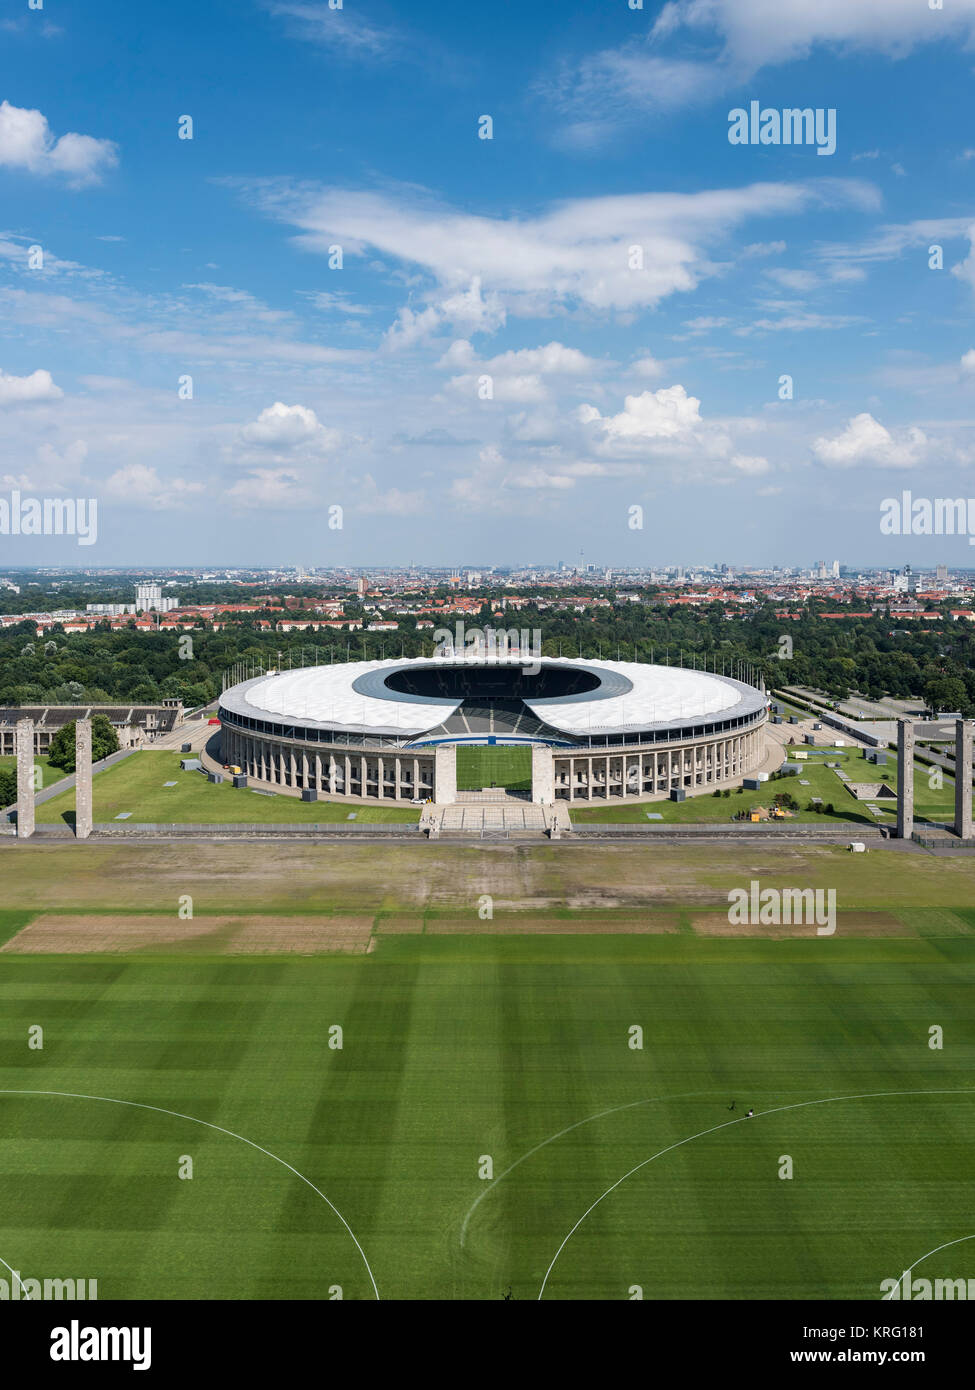 Berlin. Germany. Olympic Stadium (Olympiastadion), originally designed by Werner March (1894-1976) for the 1936 - Stock Image